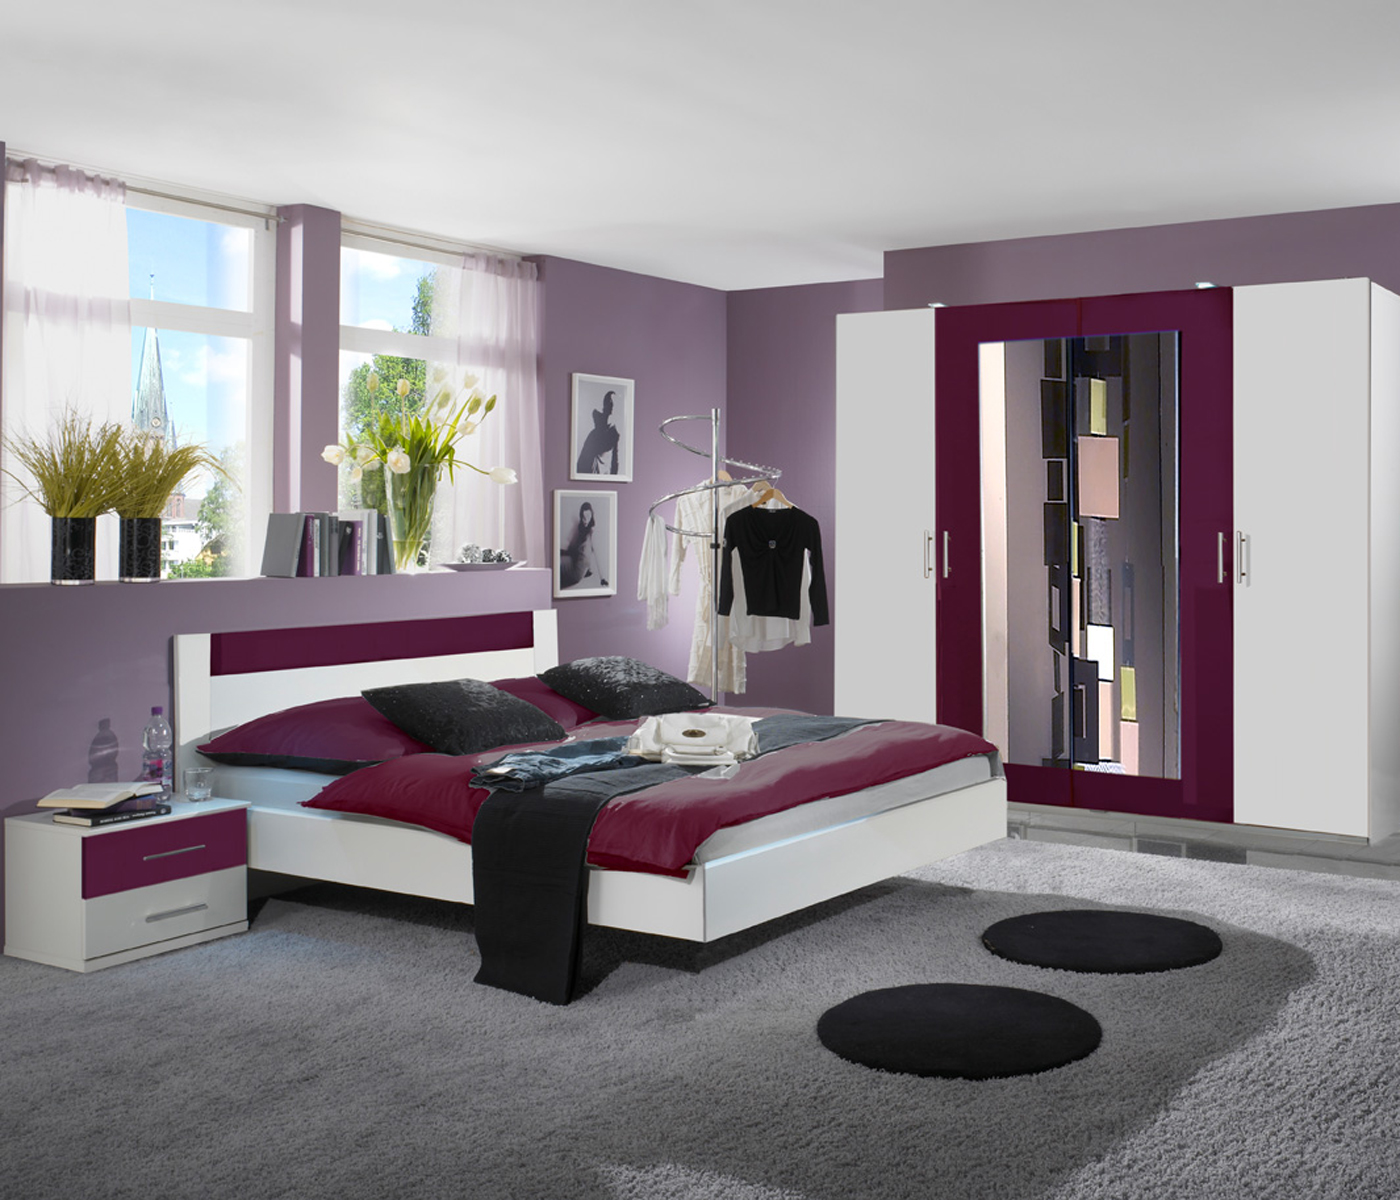 schlafzimmer komplettset kleiderschrank bett 180x200 nachttische ebay. Black Bedroom Furniture Sets. Home Design Ideas